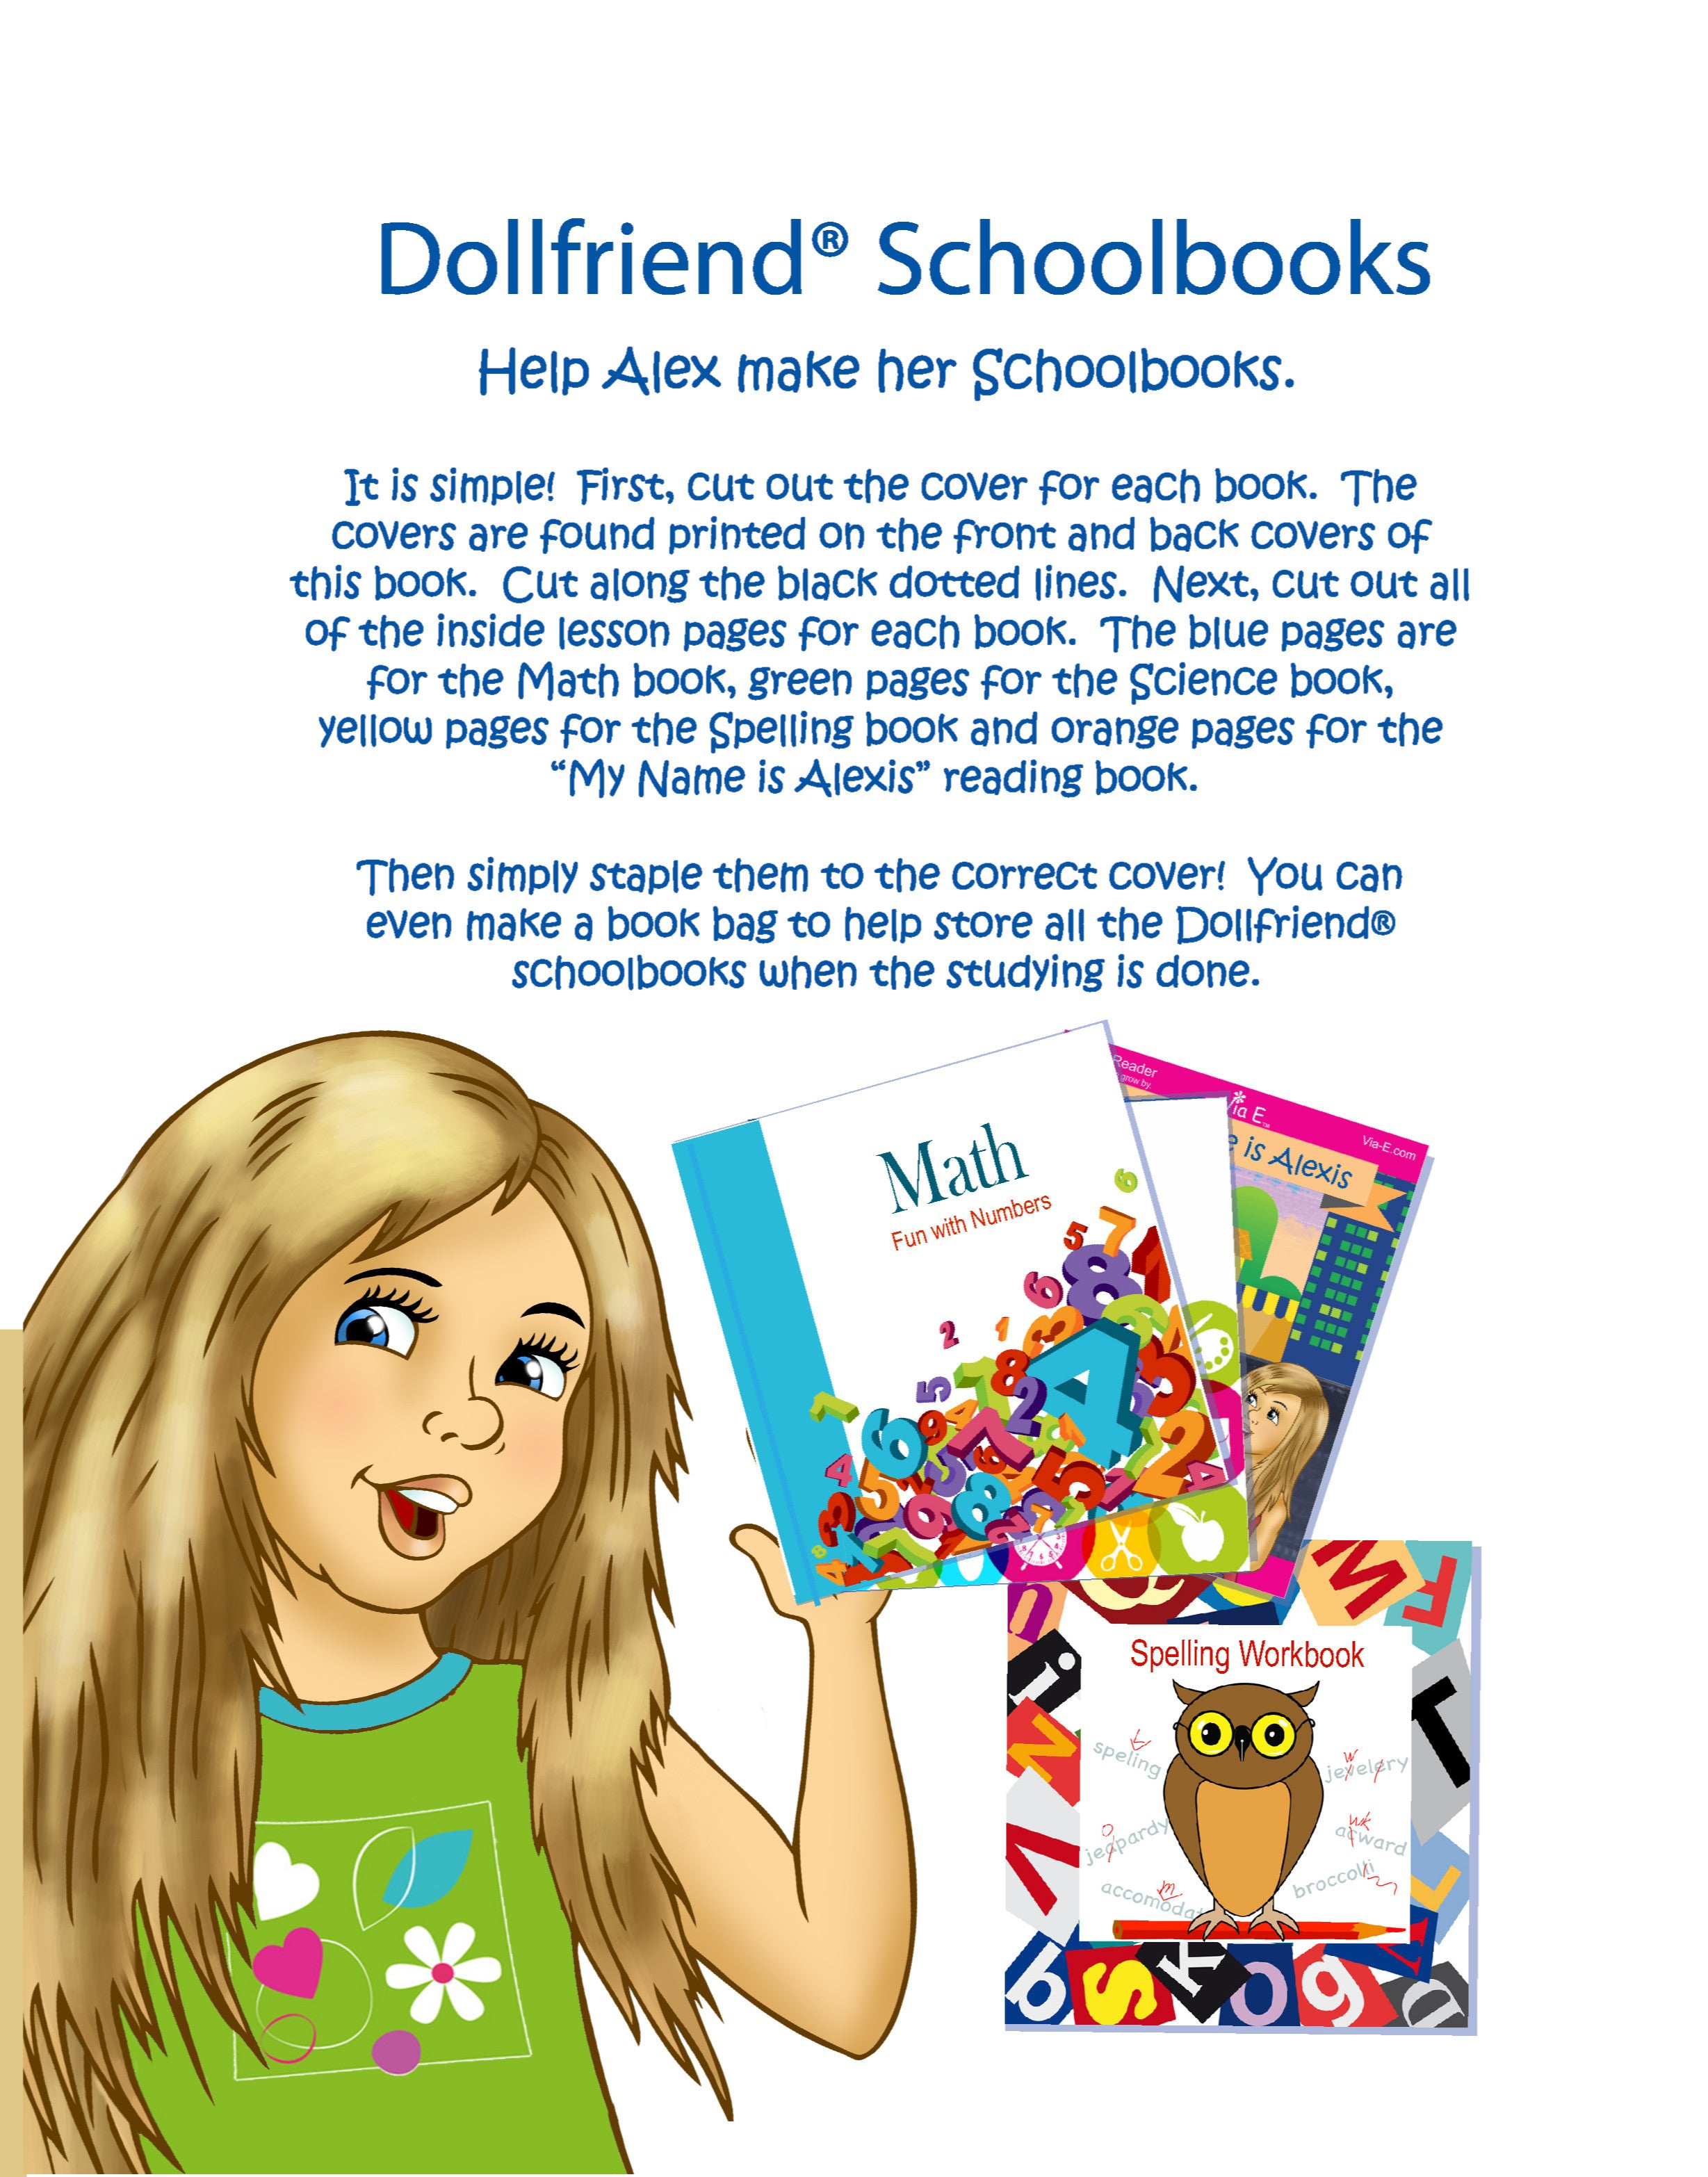 My Schoolbooks - Accessory Activity for Girls and Dollfriends(R)